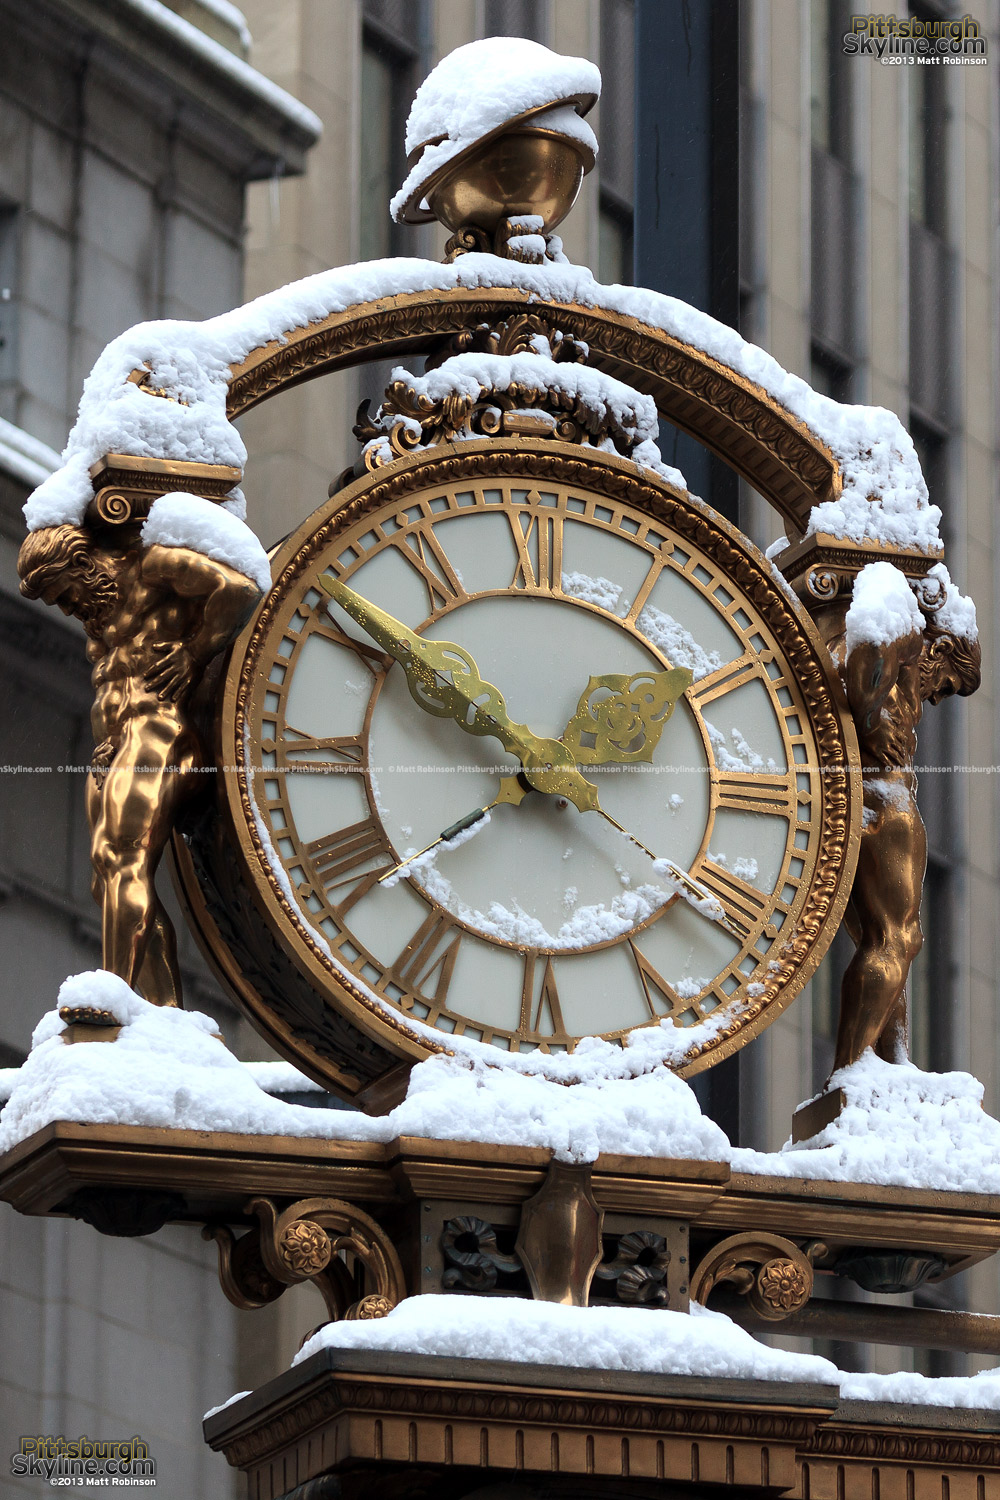 Snow covering the Kaufmann's Clock